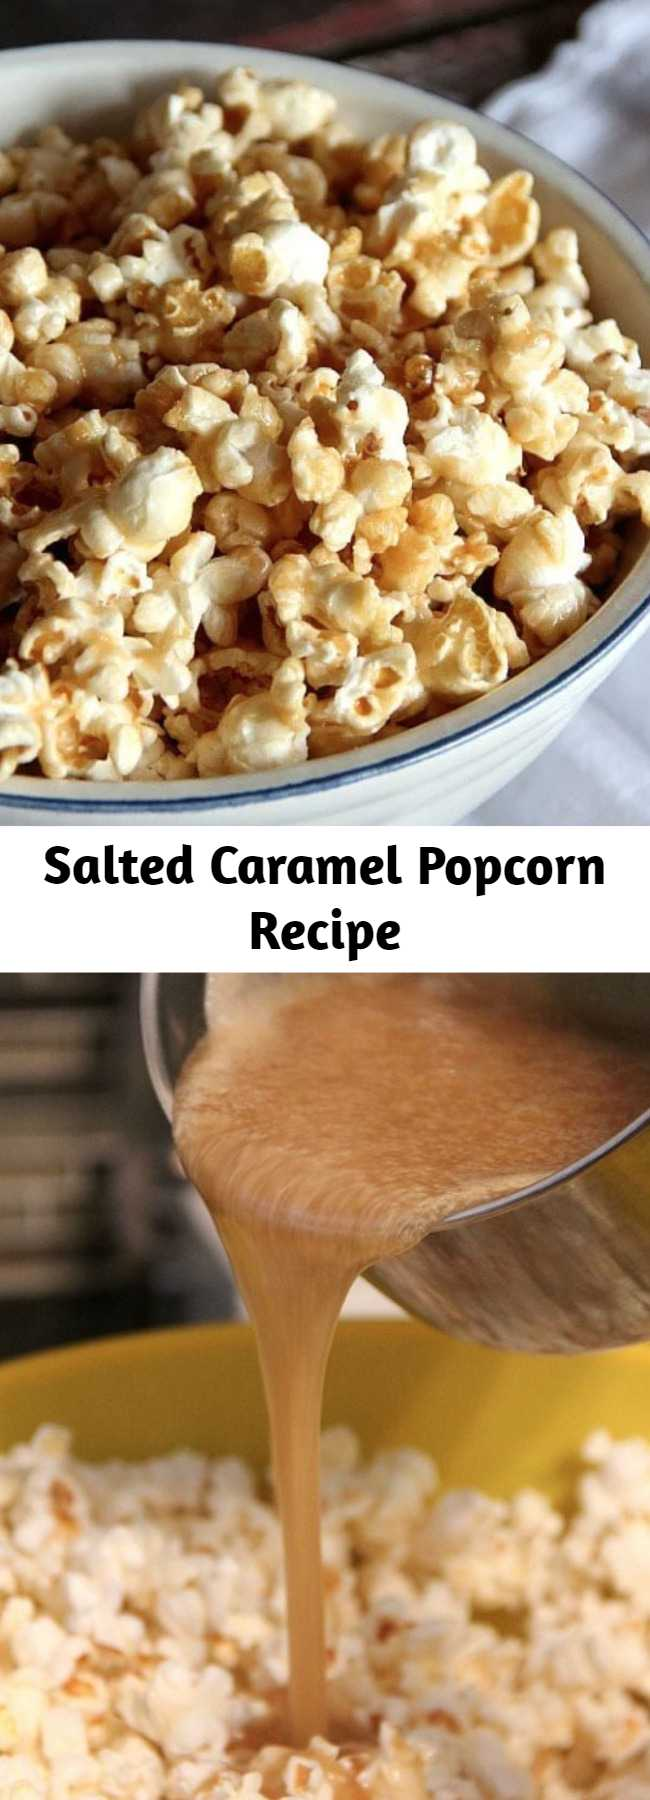 Salted Caramel Popcorn Recipe - This Easy Salted Caramel Popcorn Recipe is my favorite Caramel Corn Recipe! It's so easy and adding that extra salt gives it the perfect salty/sweet combo!